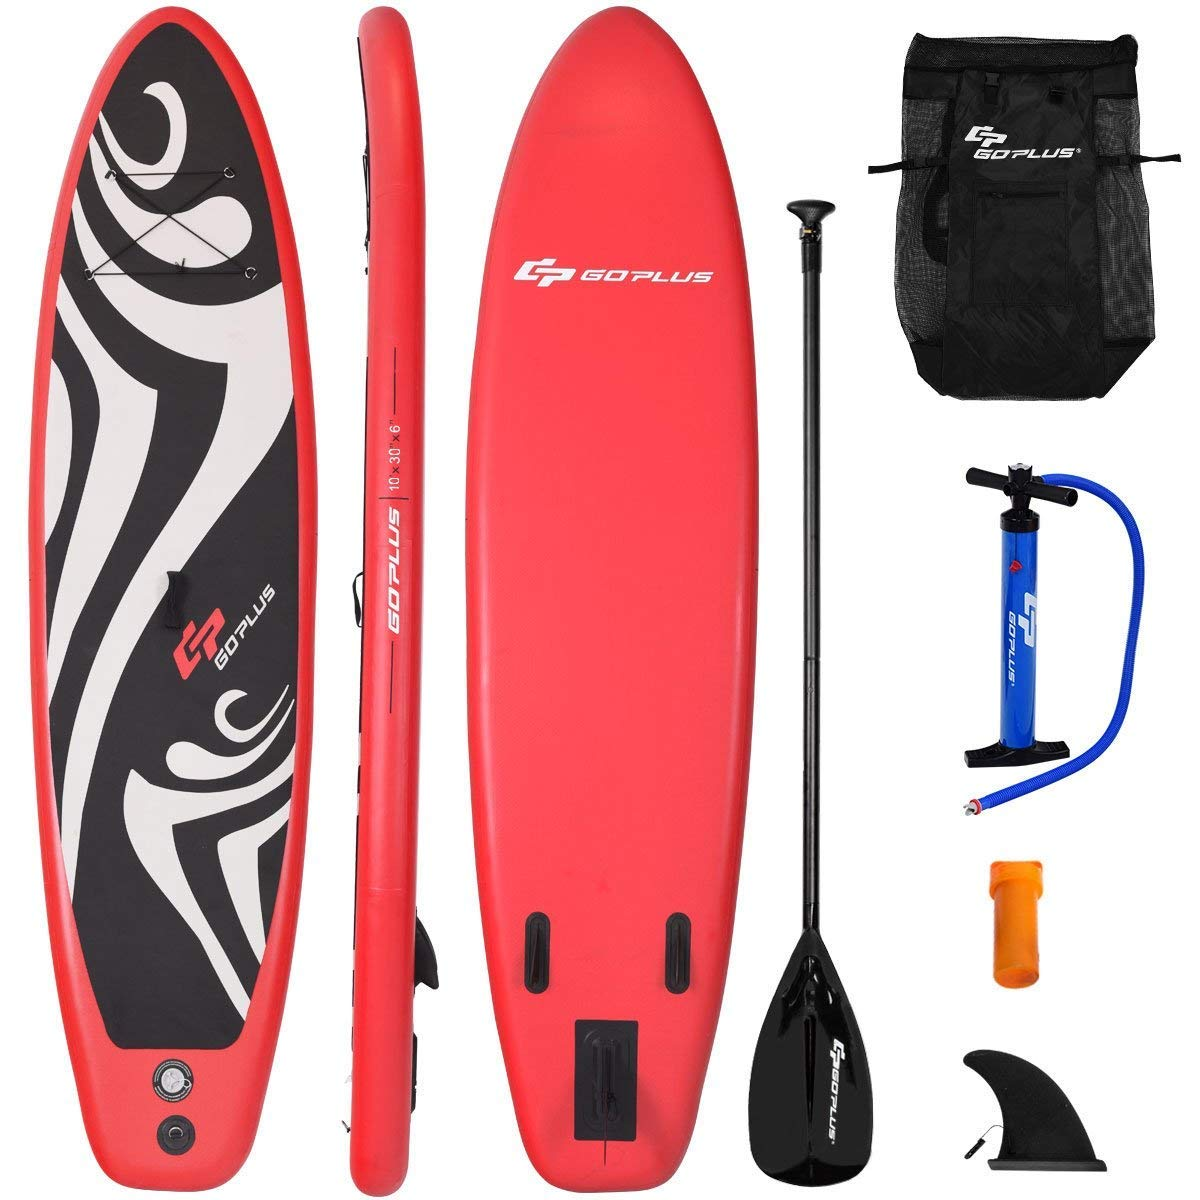 Goplus Inflatable Stand up Paddle Board Surfboard SUP Board with Adjustable Paddle Carry Bag Manual Pump Repair Kit Removable Fin for All Skill Levels, 6'' Thick (Red, 10FT)